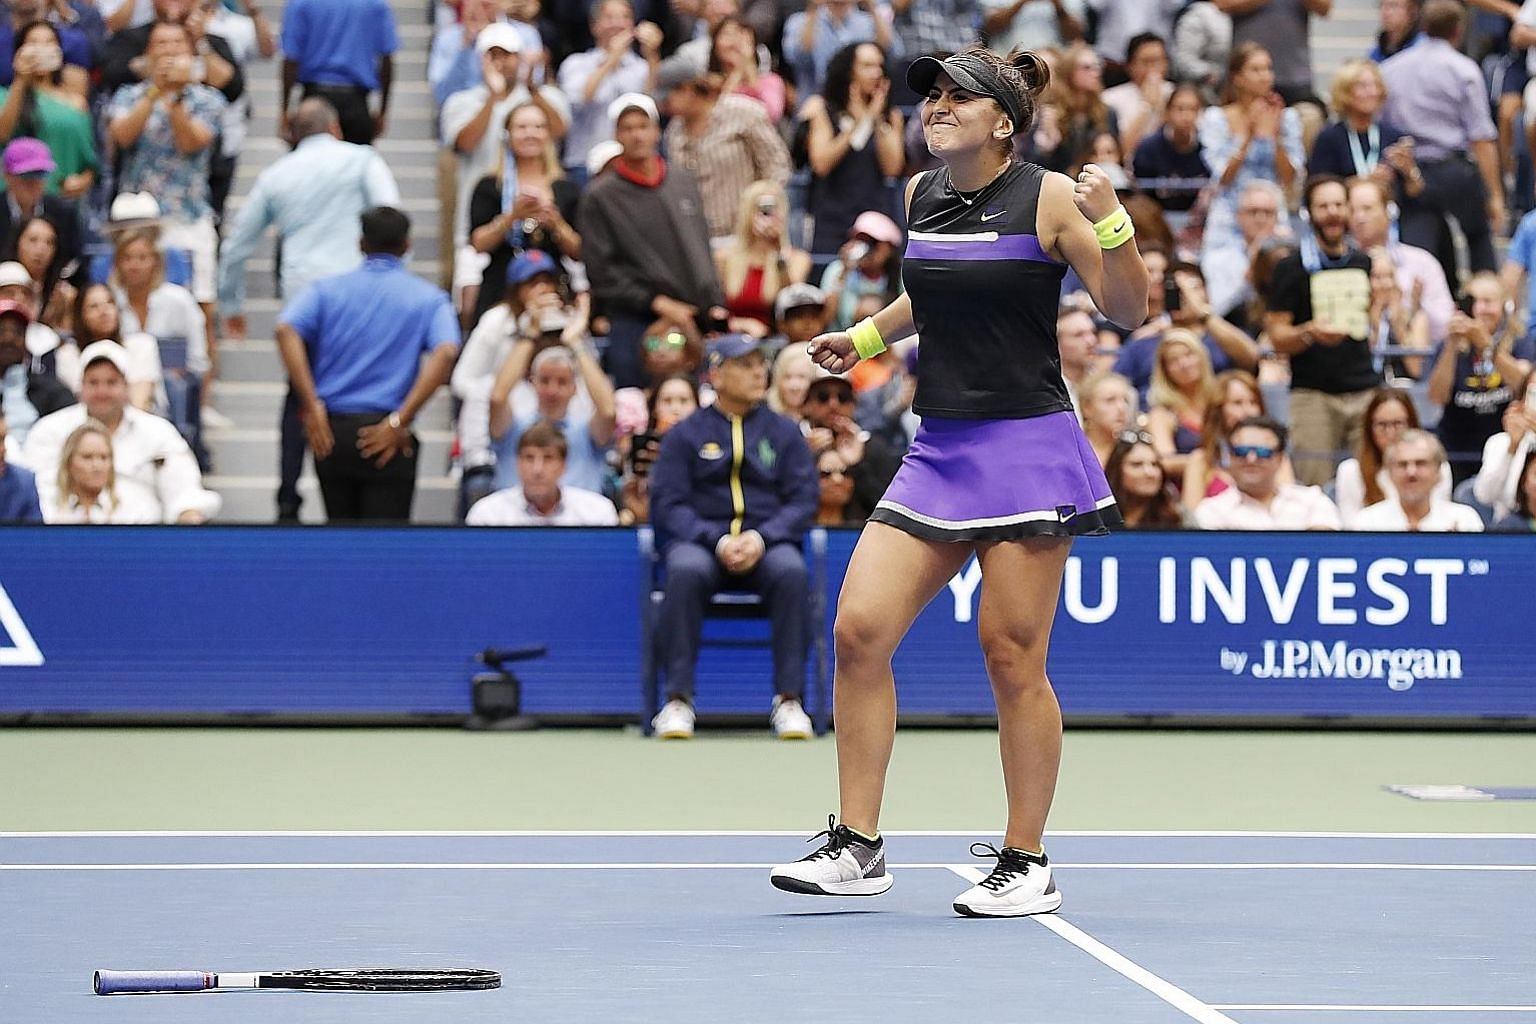 A jubilant Bianca Andreescu after becoming Canada's first Grand Slam champion. She beat Serena Williams 6-3, 7-5 in the US Open final on Saturday to extend the American's wait for a 24th major singles title.